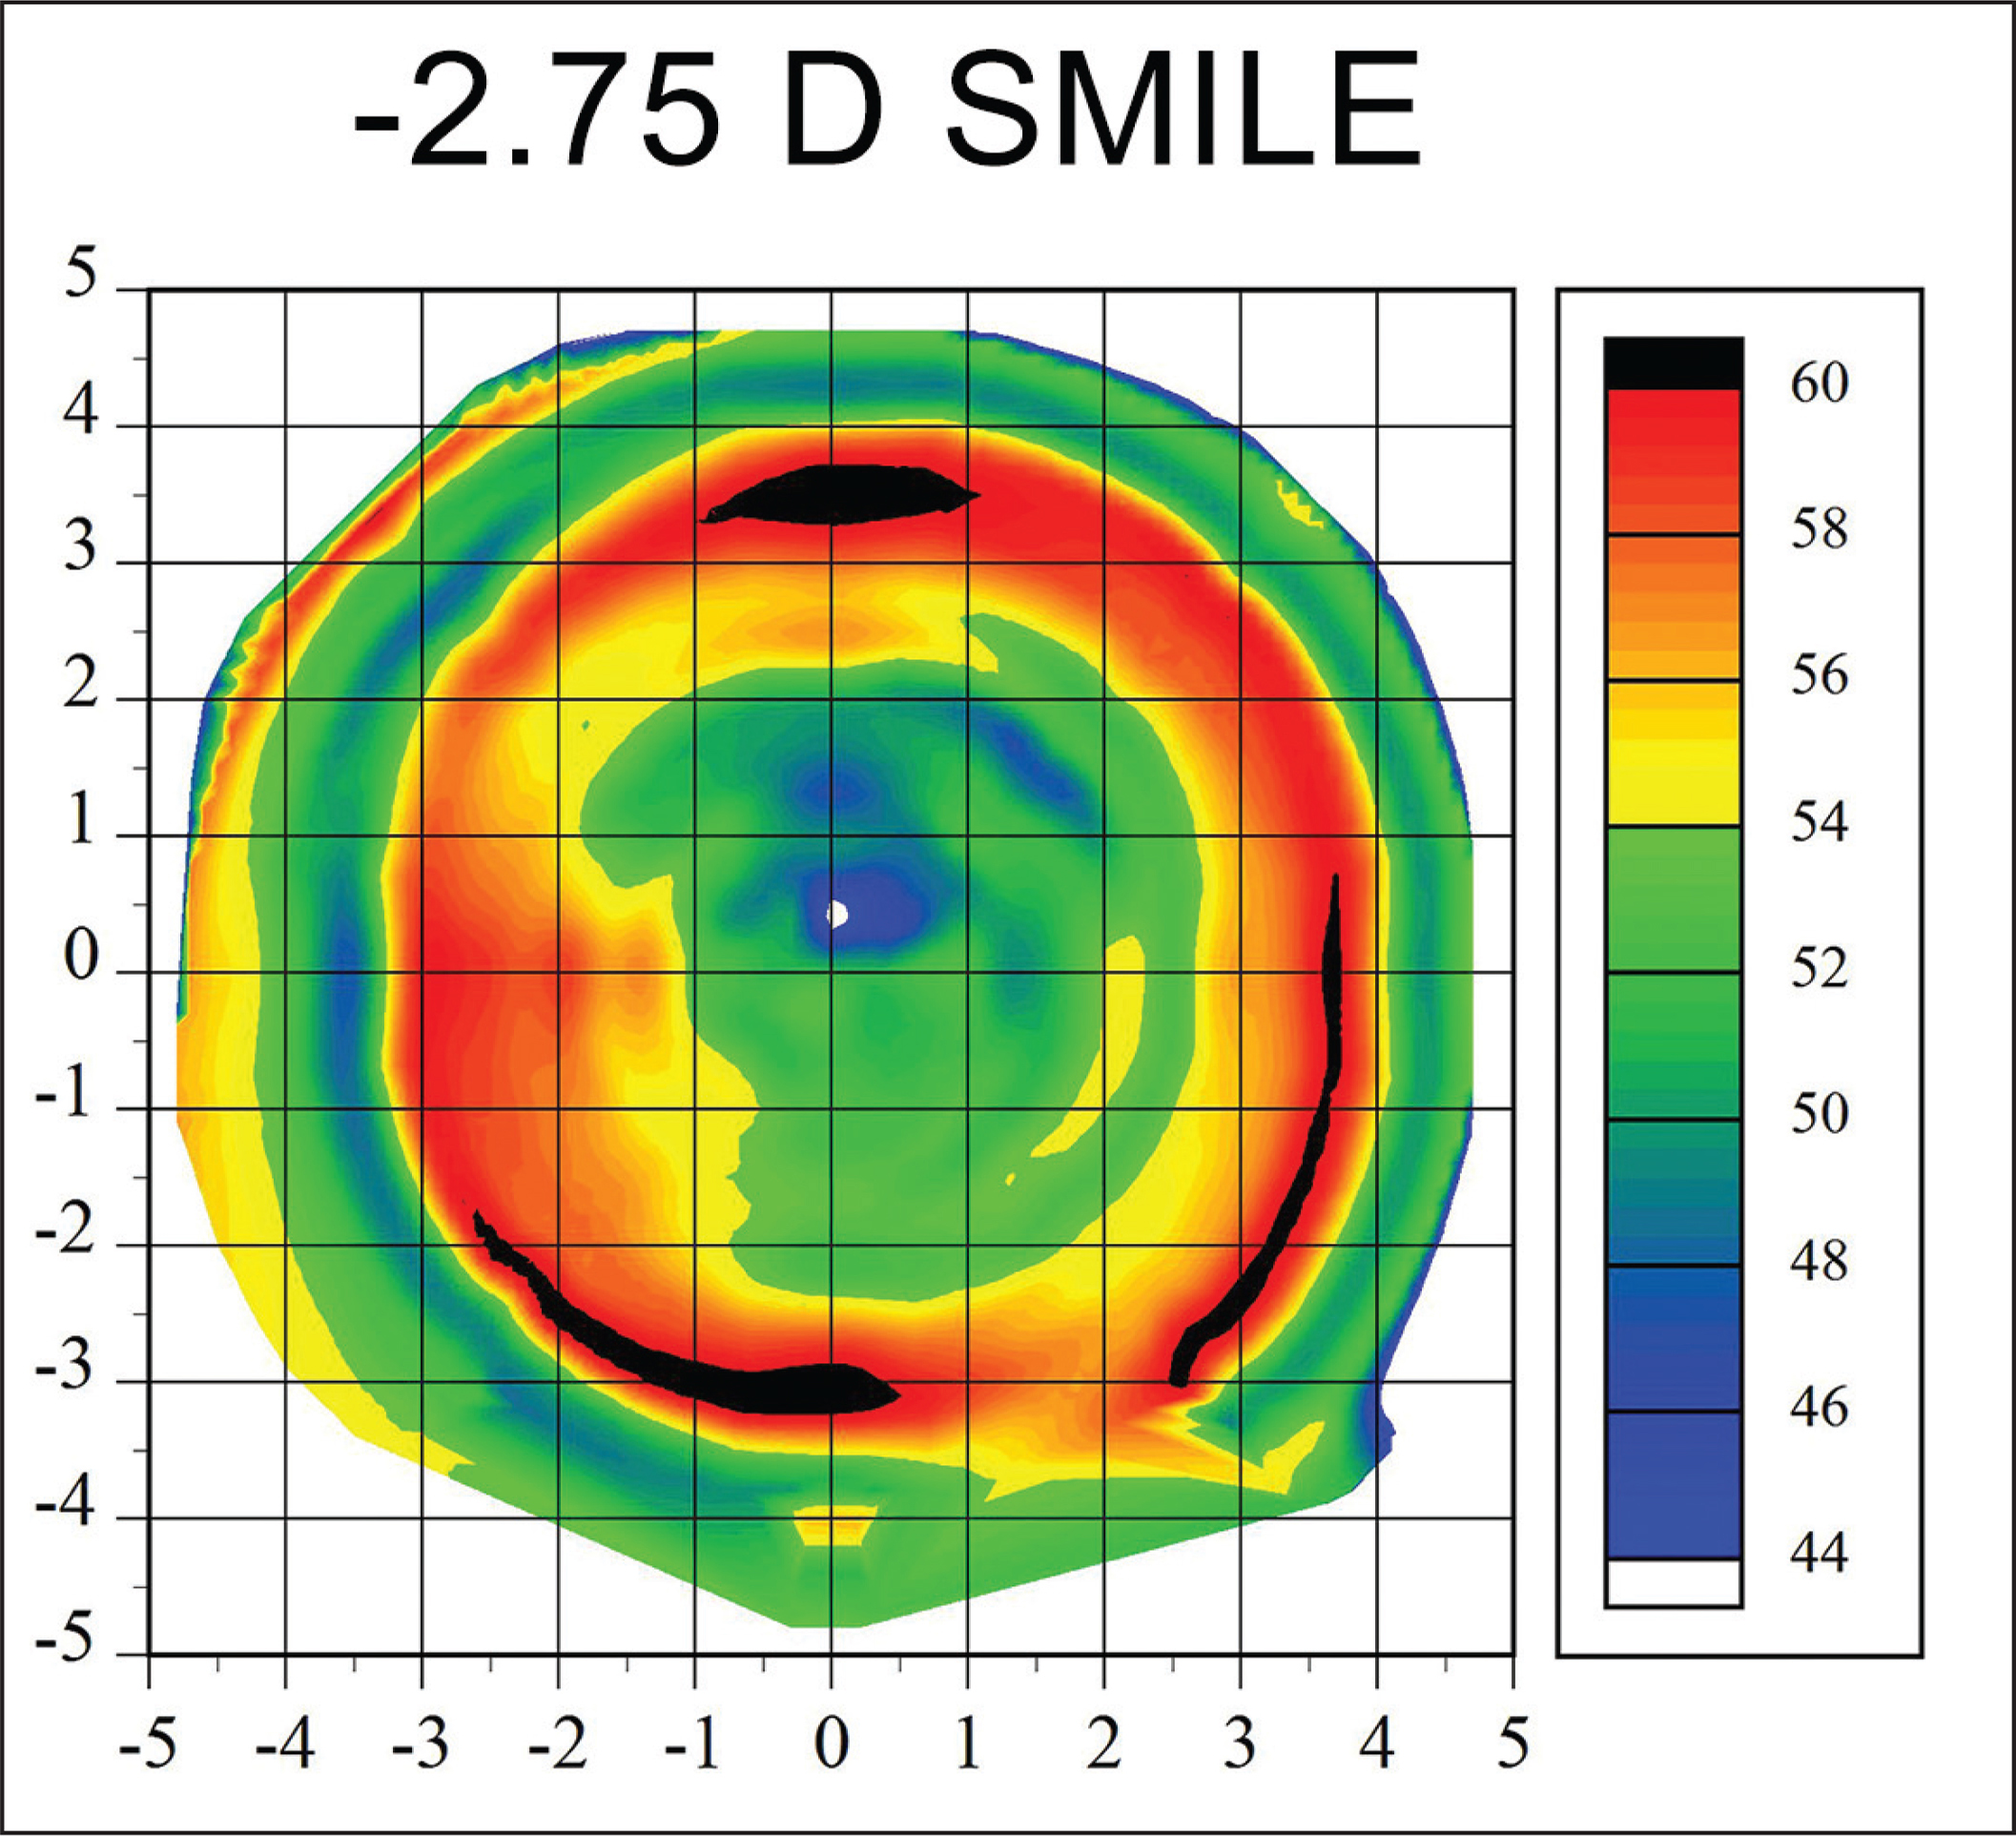 Examples of an Artemis Insight 100 very high frequency digital ultrasound (ArcScan, Inc., Golden, CO) epithelial thickness profile after small incision lenticule extraction (SMILE) for low myopia (−2.75 diopters [D]). The epithelial thickness profile is thinner centrally and thicker paracentrally, which is the opposite to that observed after myopic LASIK. The relative dominance of the minimum lenticule thickness in low myopic SMILE (20 μm in this example) means that the epithelial thickness profile appears more similar to a hyperopic than myopic treatment. Reprinted with permission from Reinstein DZ, Archer TJ, Carp GI. The Surgeon's Guide to SMILE: Small Incision Lenticule Extraction. Thorofare, NJ: SLACK Incorporated; 2018.